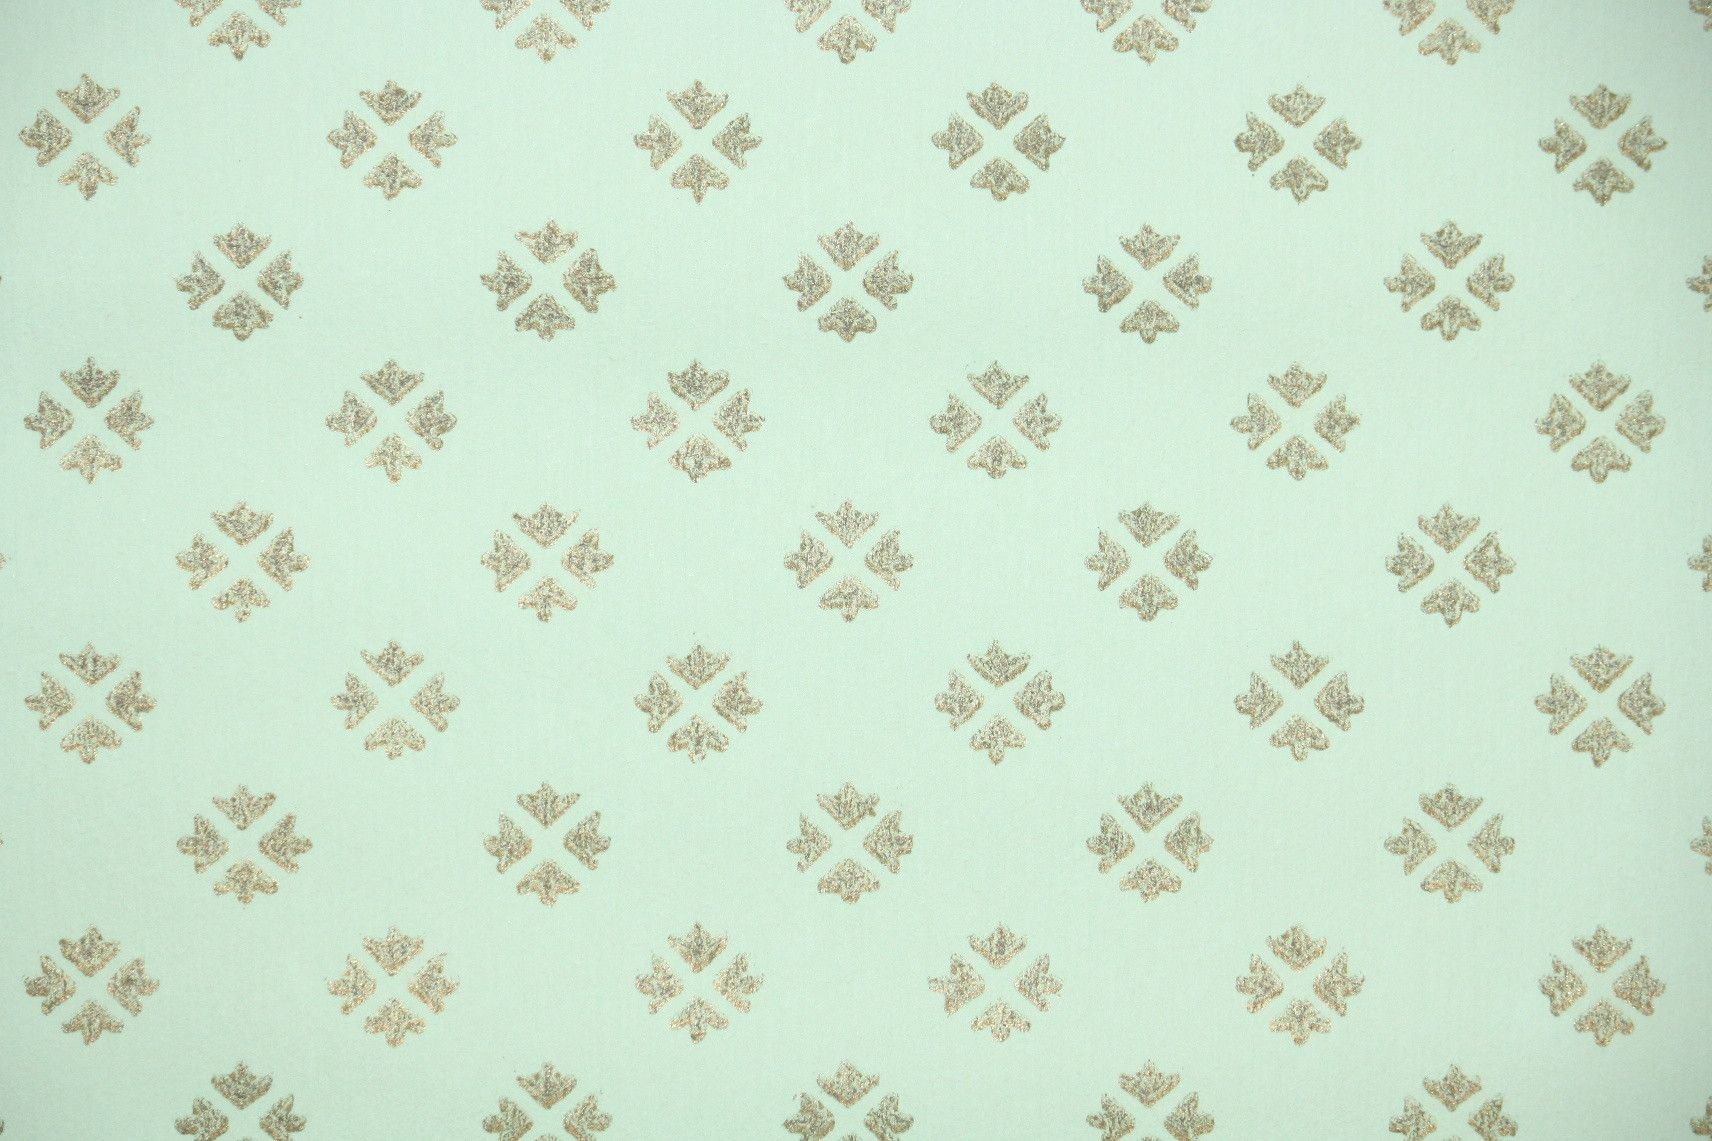 1940s Geometric Vintage Wallpaper From Hannah S Treasures